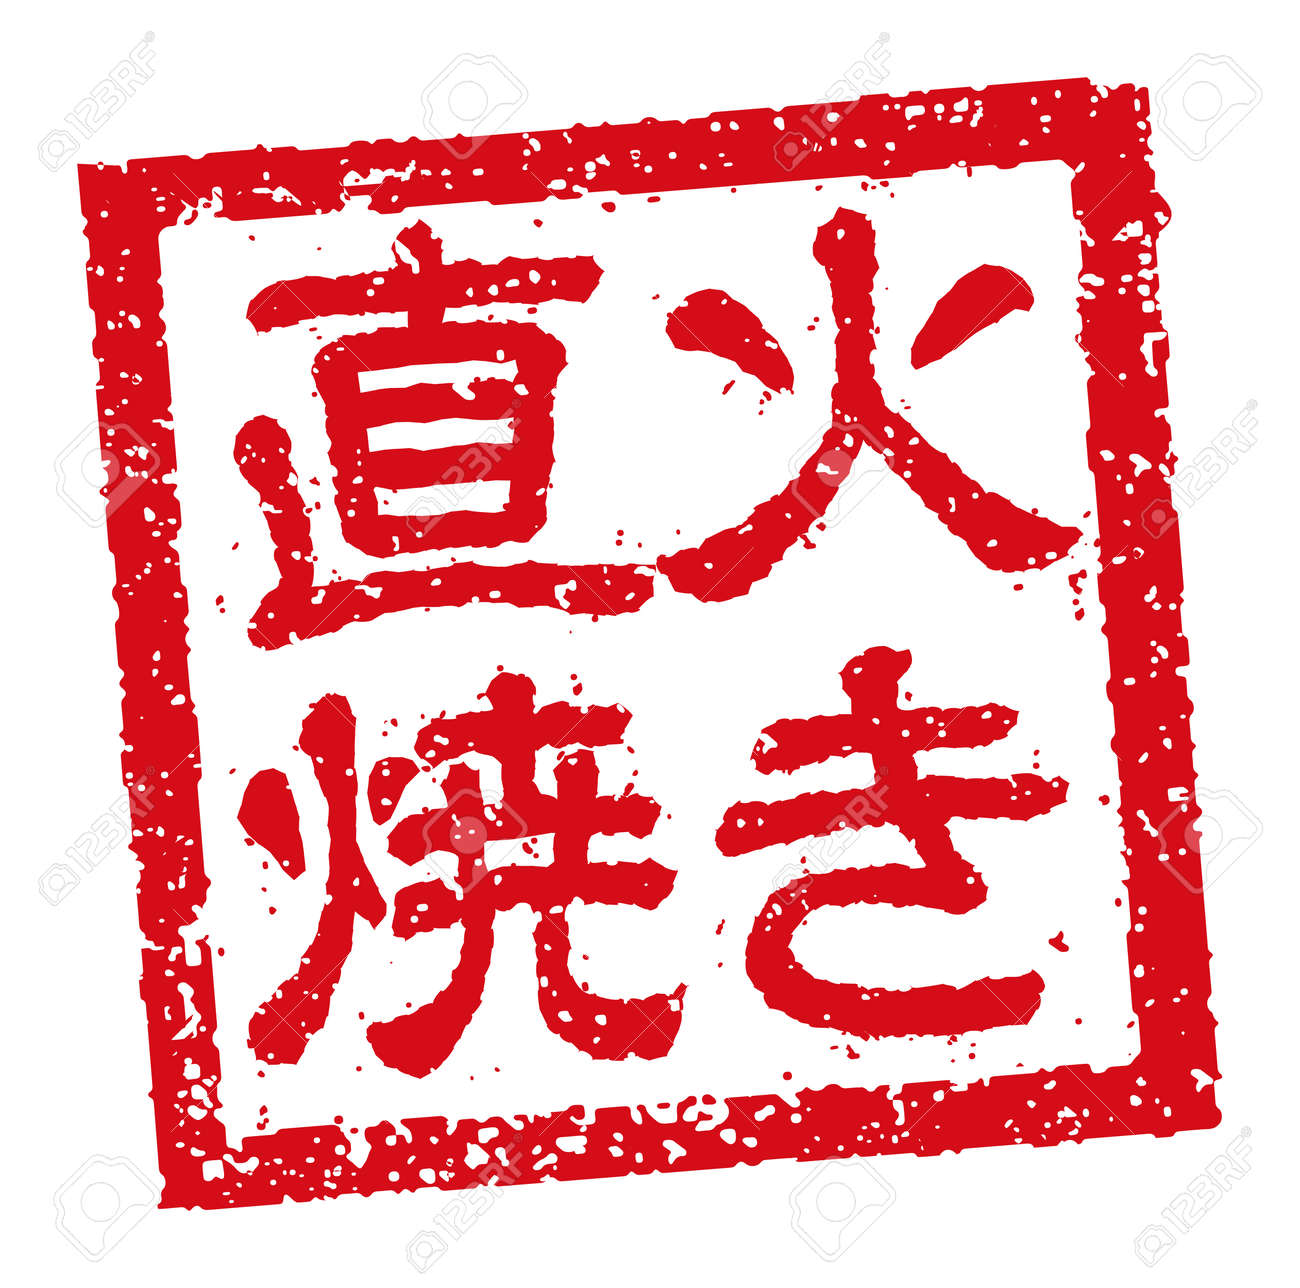 Rubber stamp illustration often used in Japanese restaurants and pubs   roast - 168885075